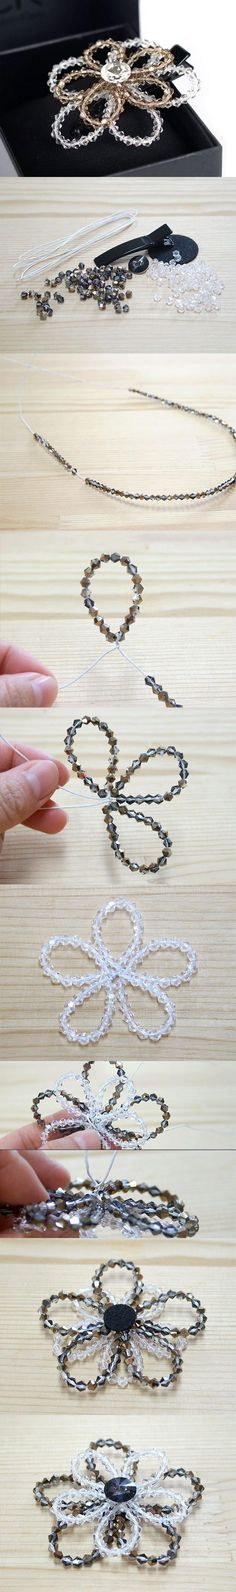 http://www.beadshop.com.br/?utm_source=pinterest&utm_medium=pint&partner=pin13 DIY Beaded Crystal Flower